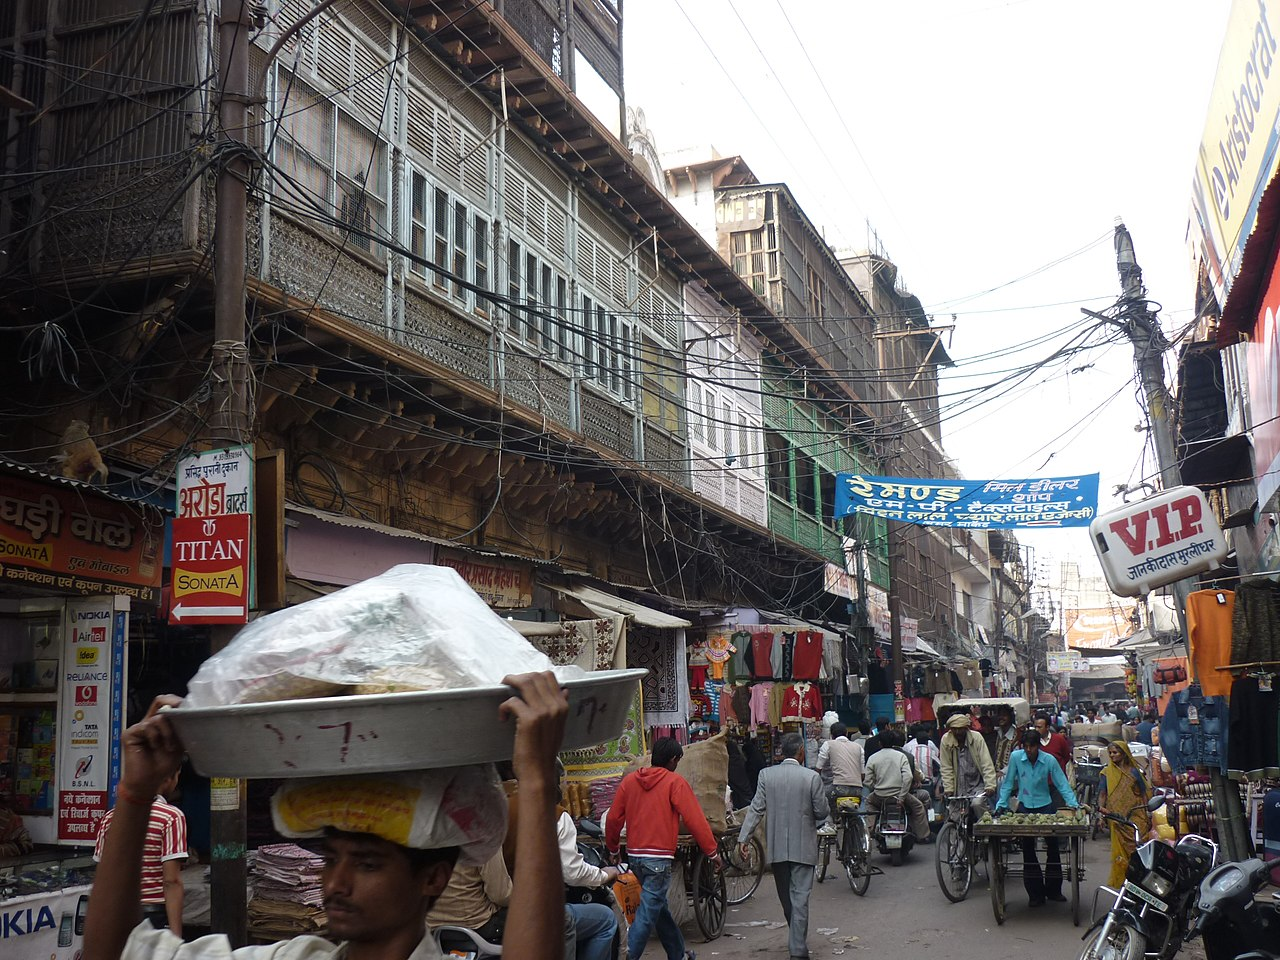 File:Old Bazaars of Agra, lots of activity and beautiful old